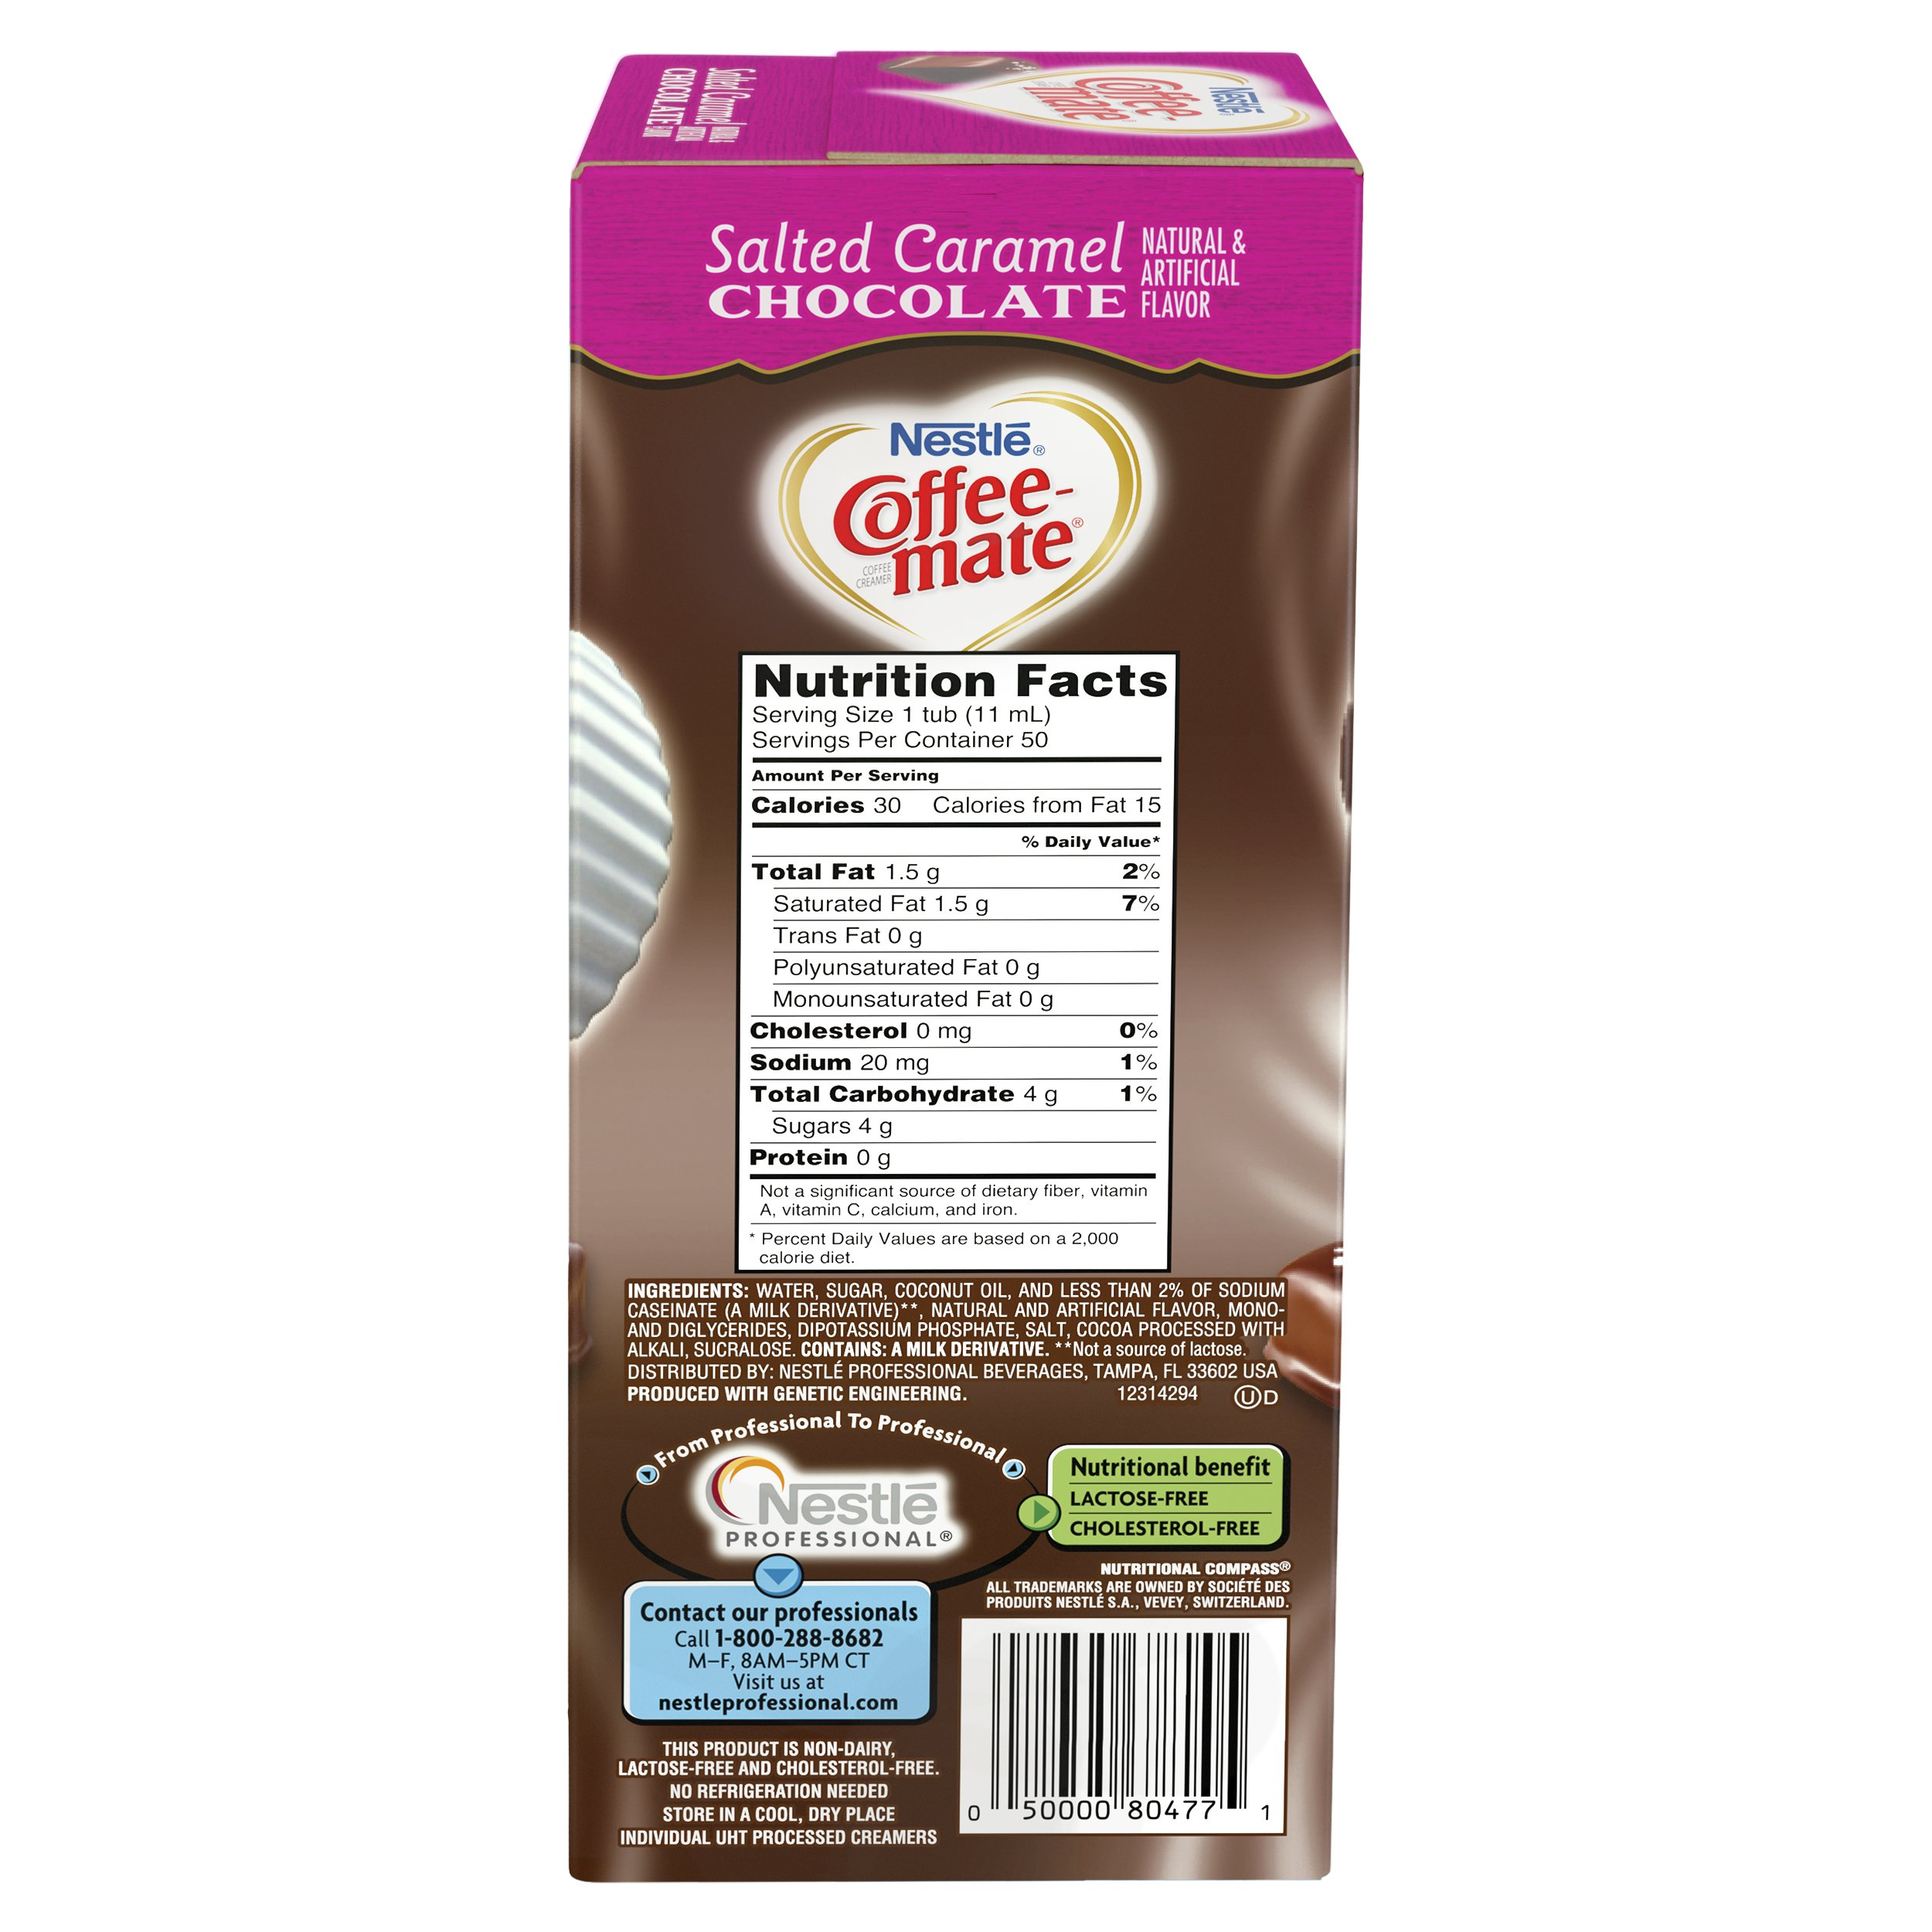 NESTLE COFFEE-MATE Coffee Creamer, Salted Caramel Chocolate, liquid creamer singles, 50 Count, Pack of 4 by Nestle Coffee Mate (Image #3)